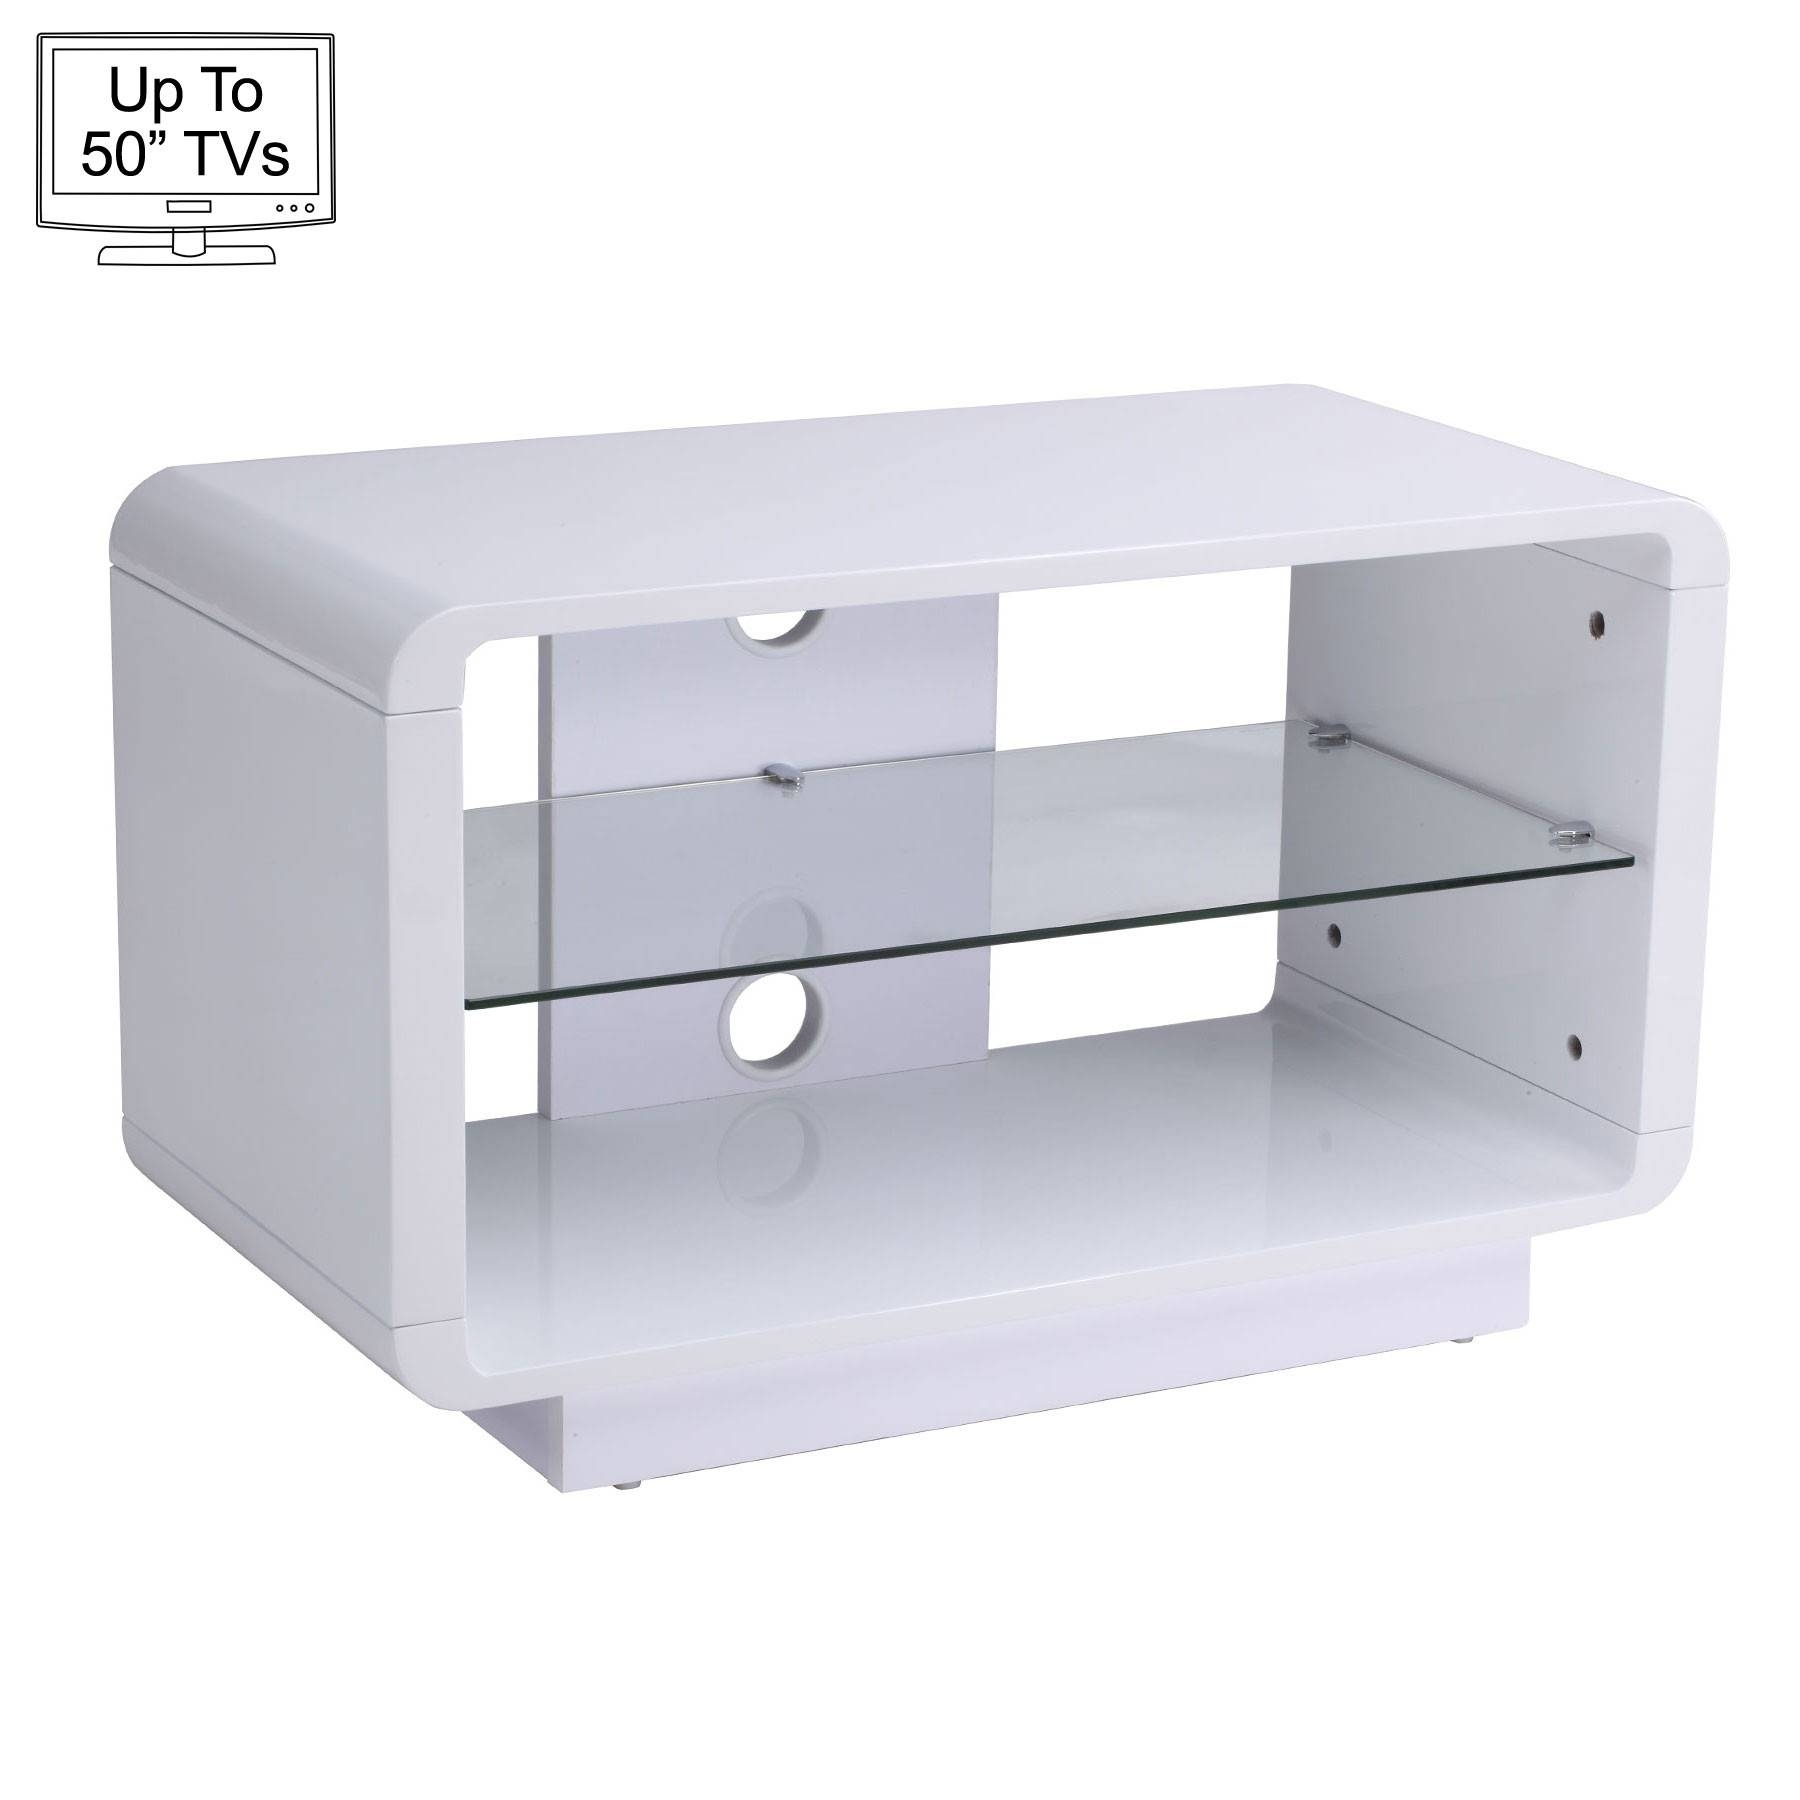 """Luna 80Cm White Tv Stand For Up To 50"""" Tvs throughout White Tv Cabinets (Image 6 of 15)"""